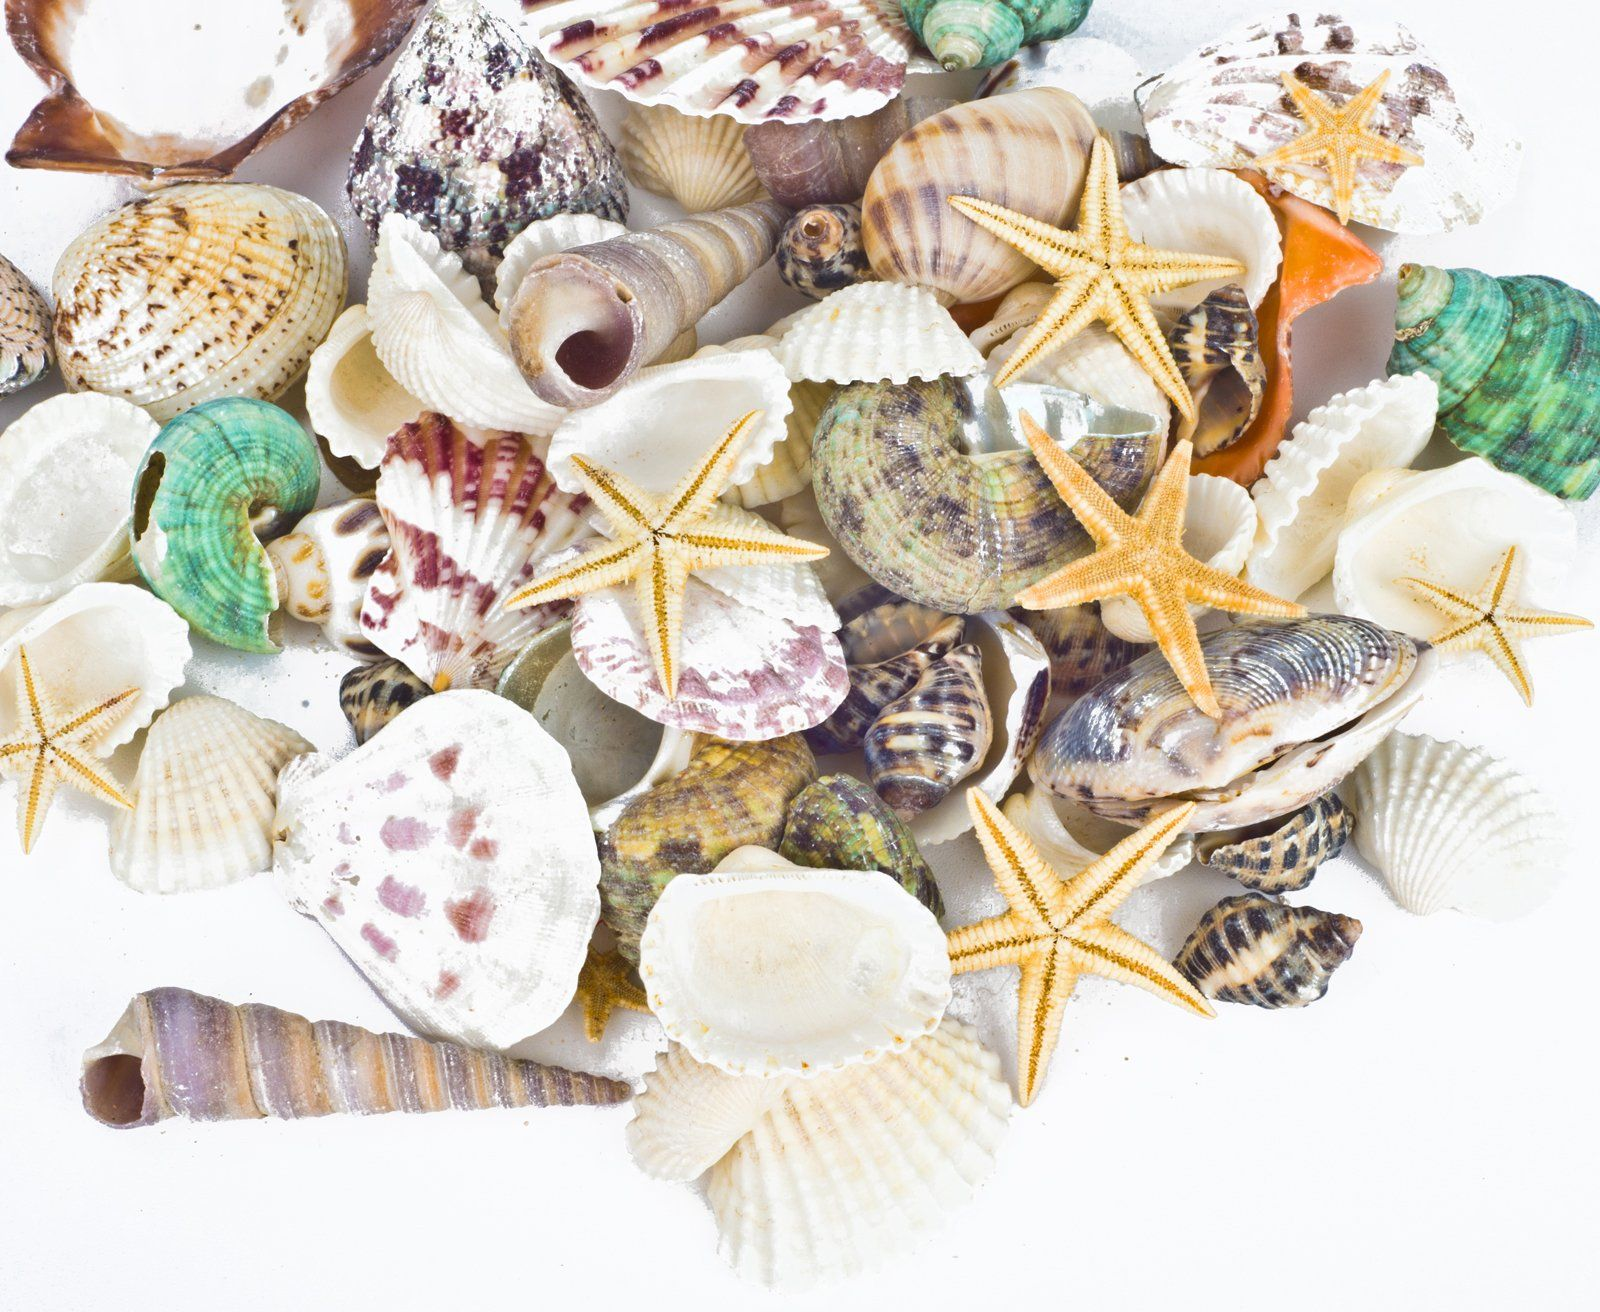 pcs Famoby Sea Shells Mixed Beach Seashells Starfish for Beach Theme Party Wedding Decorations DIY Crafts Candle Making Fish Tank Vase Fillers Home Decorations Supplies 70